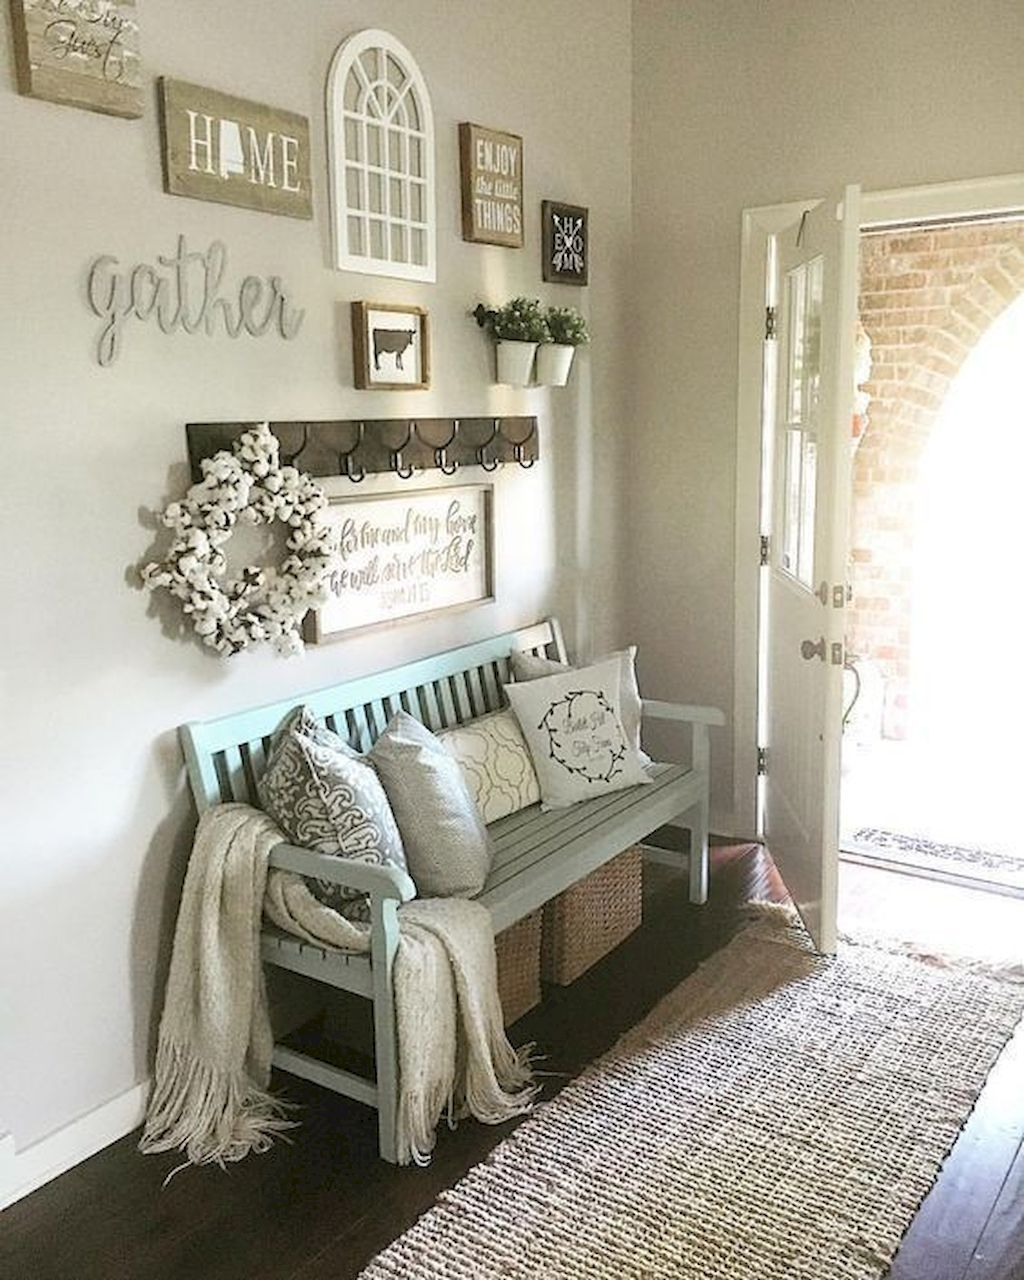 farmhouse decor farmhousedecor countrydecor home homedecor boho bohodecor bohodecorideas bohochic also stunning rustic entryway decorating ideas for the new rh pinterest